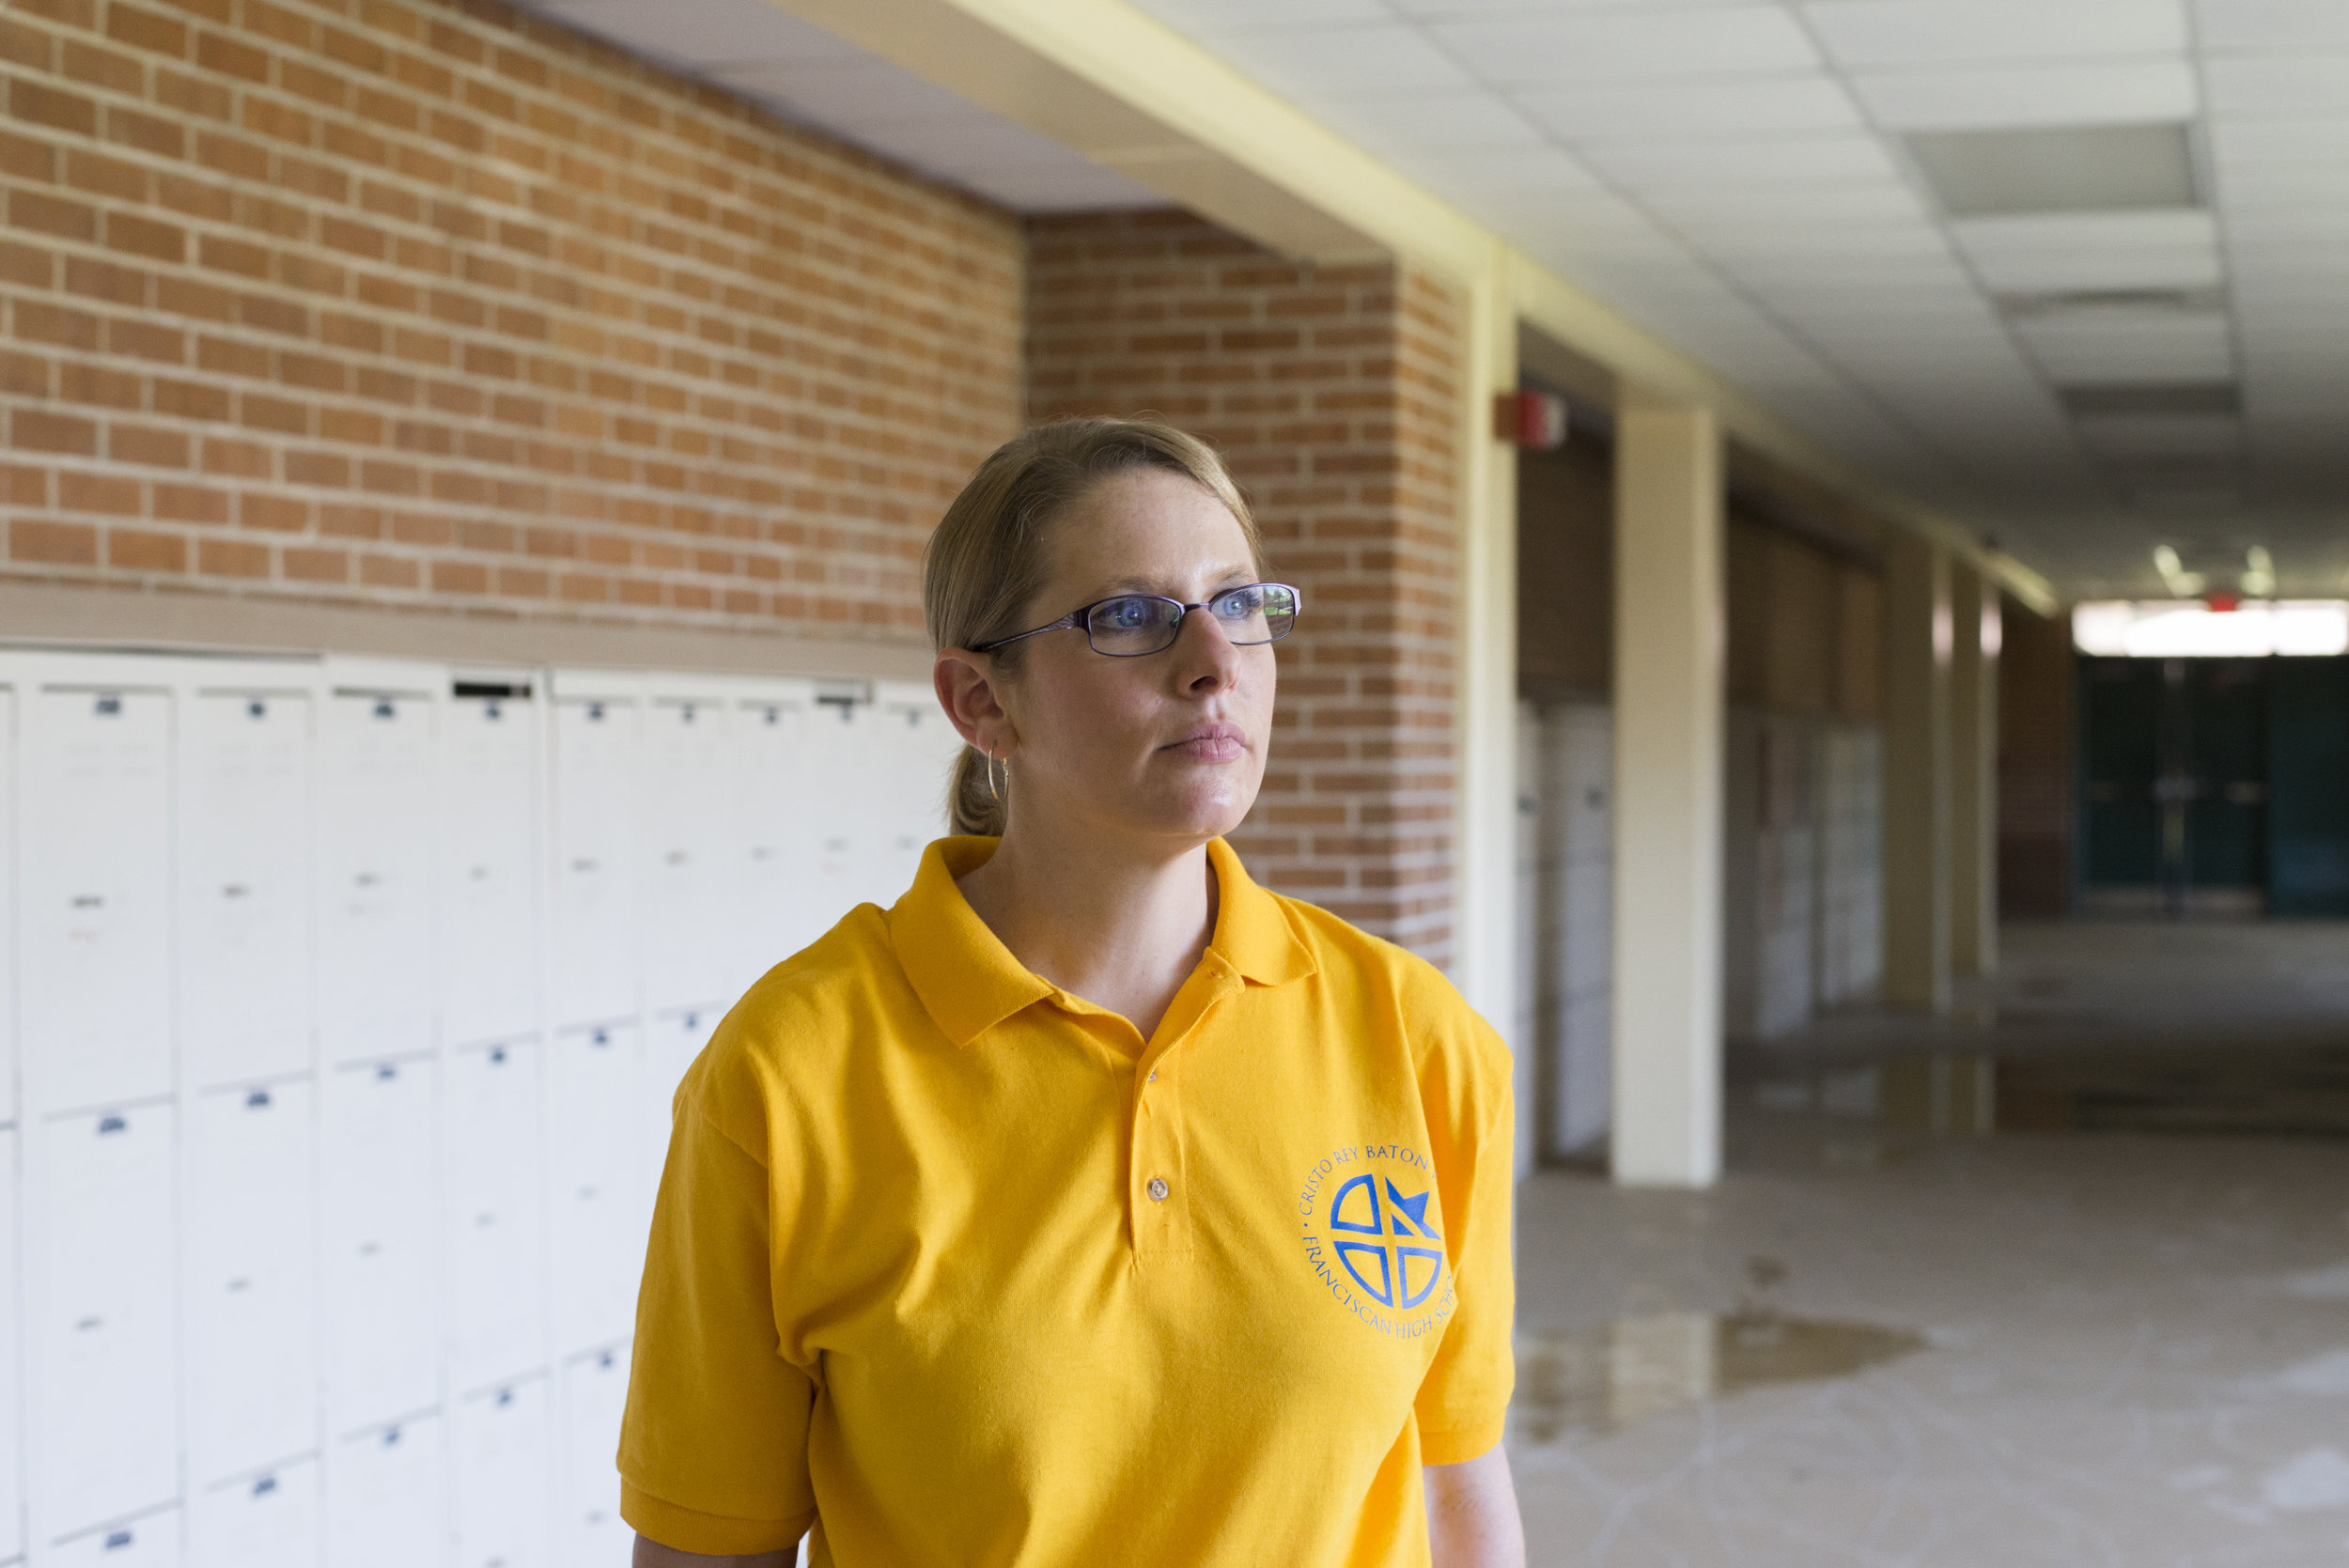 Cristo Rey Flood Damage_Allie Appel_19.jpg